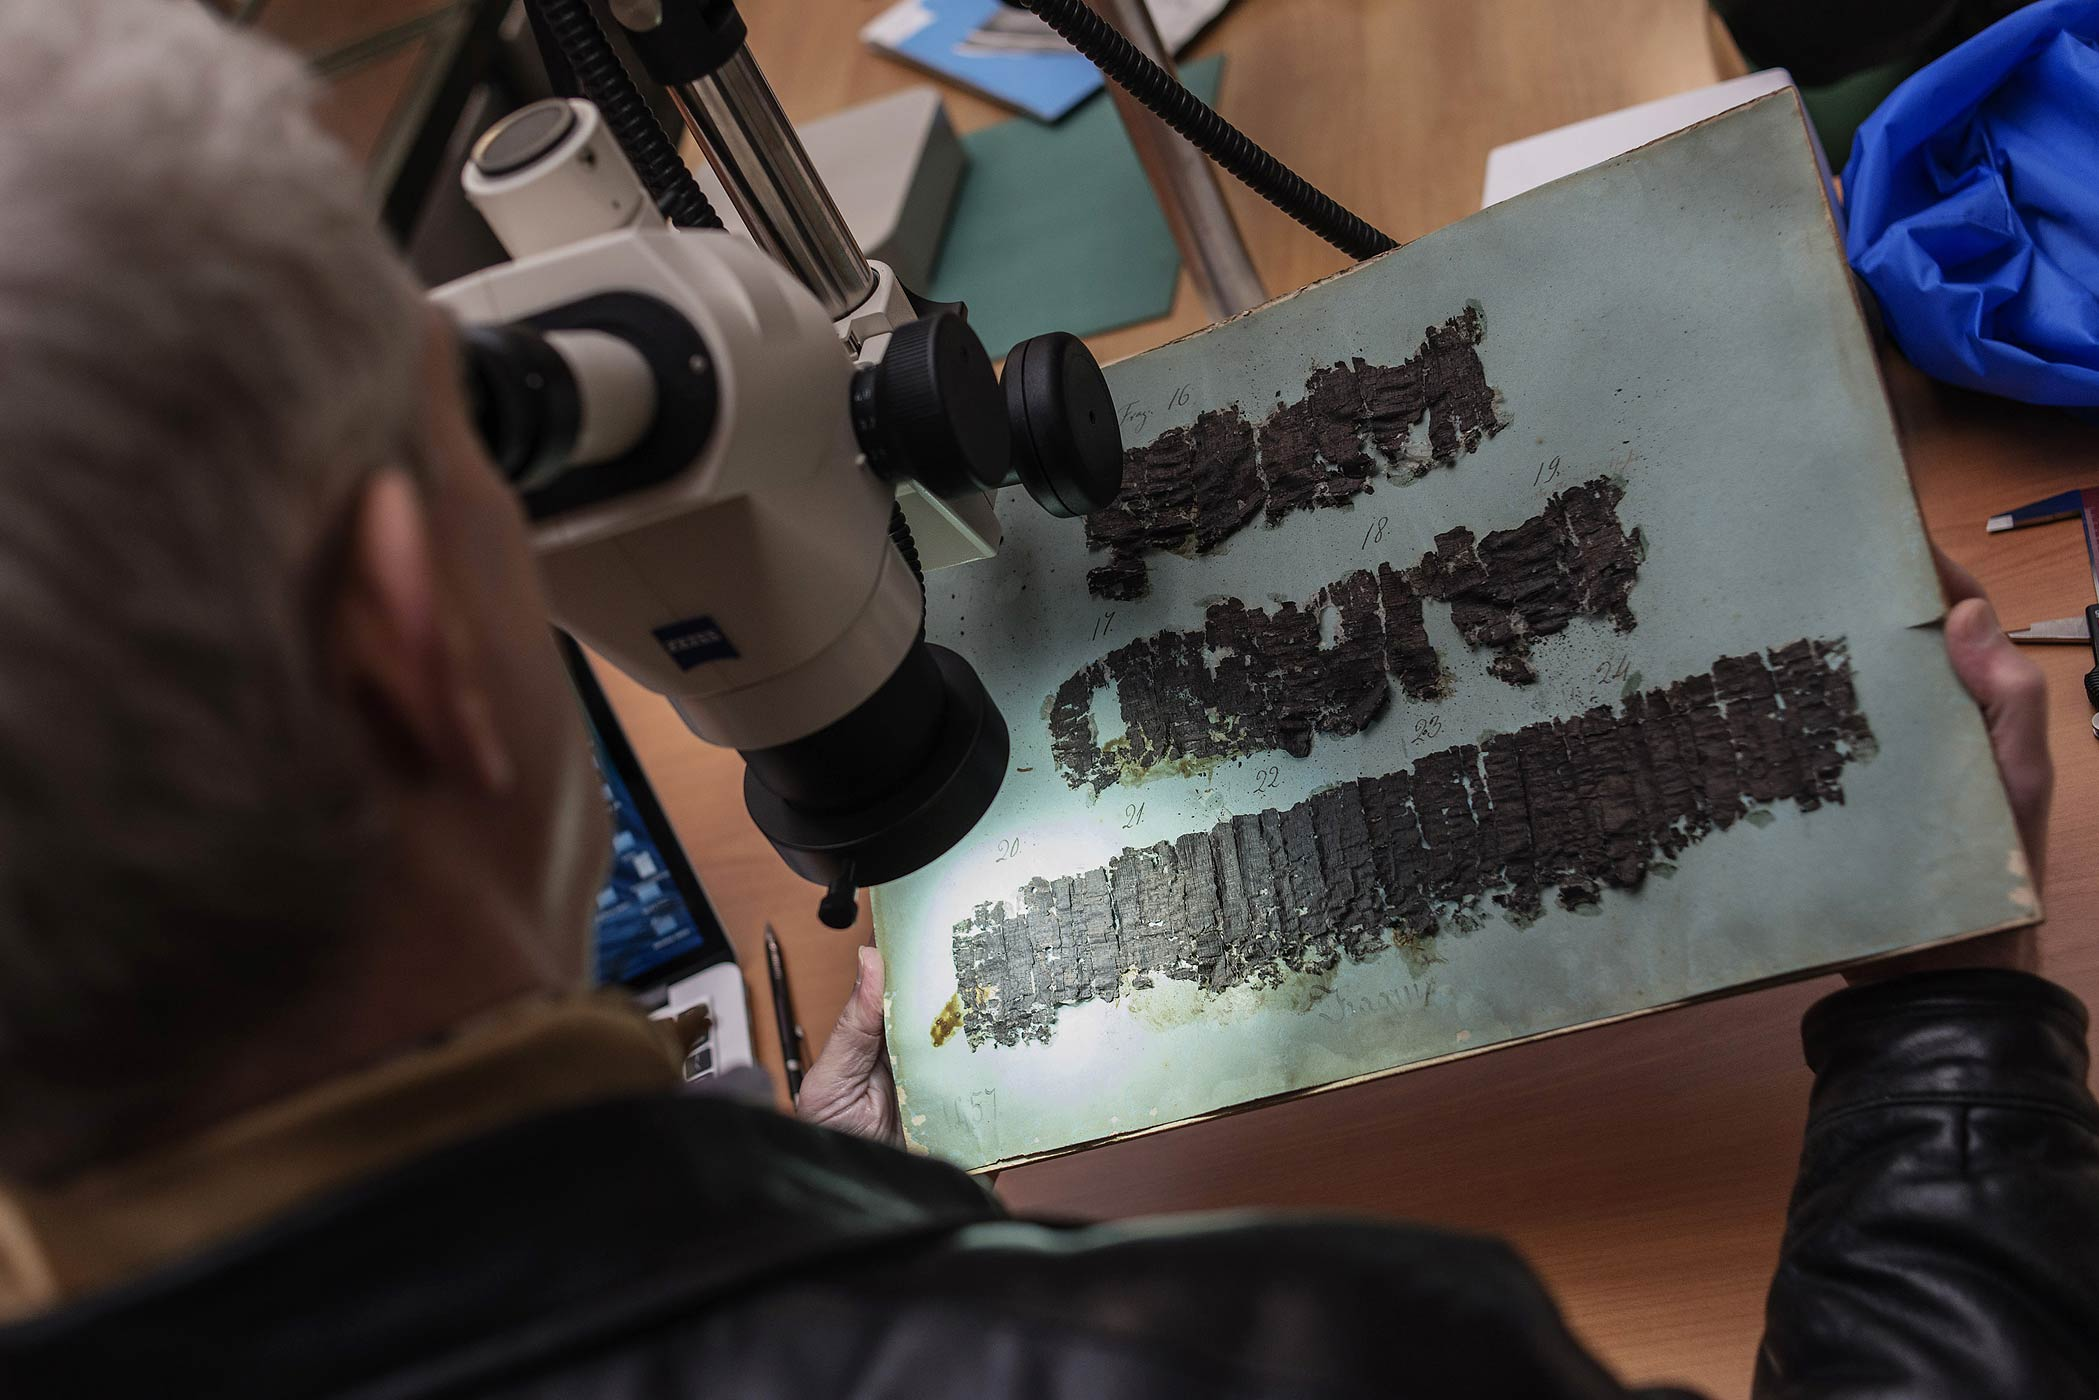 David Blank, professor of Classics from the University of California, looks through a microscope at an ancient papyrus at the Naples' National Library, Italy, Jan. 20, 2015.